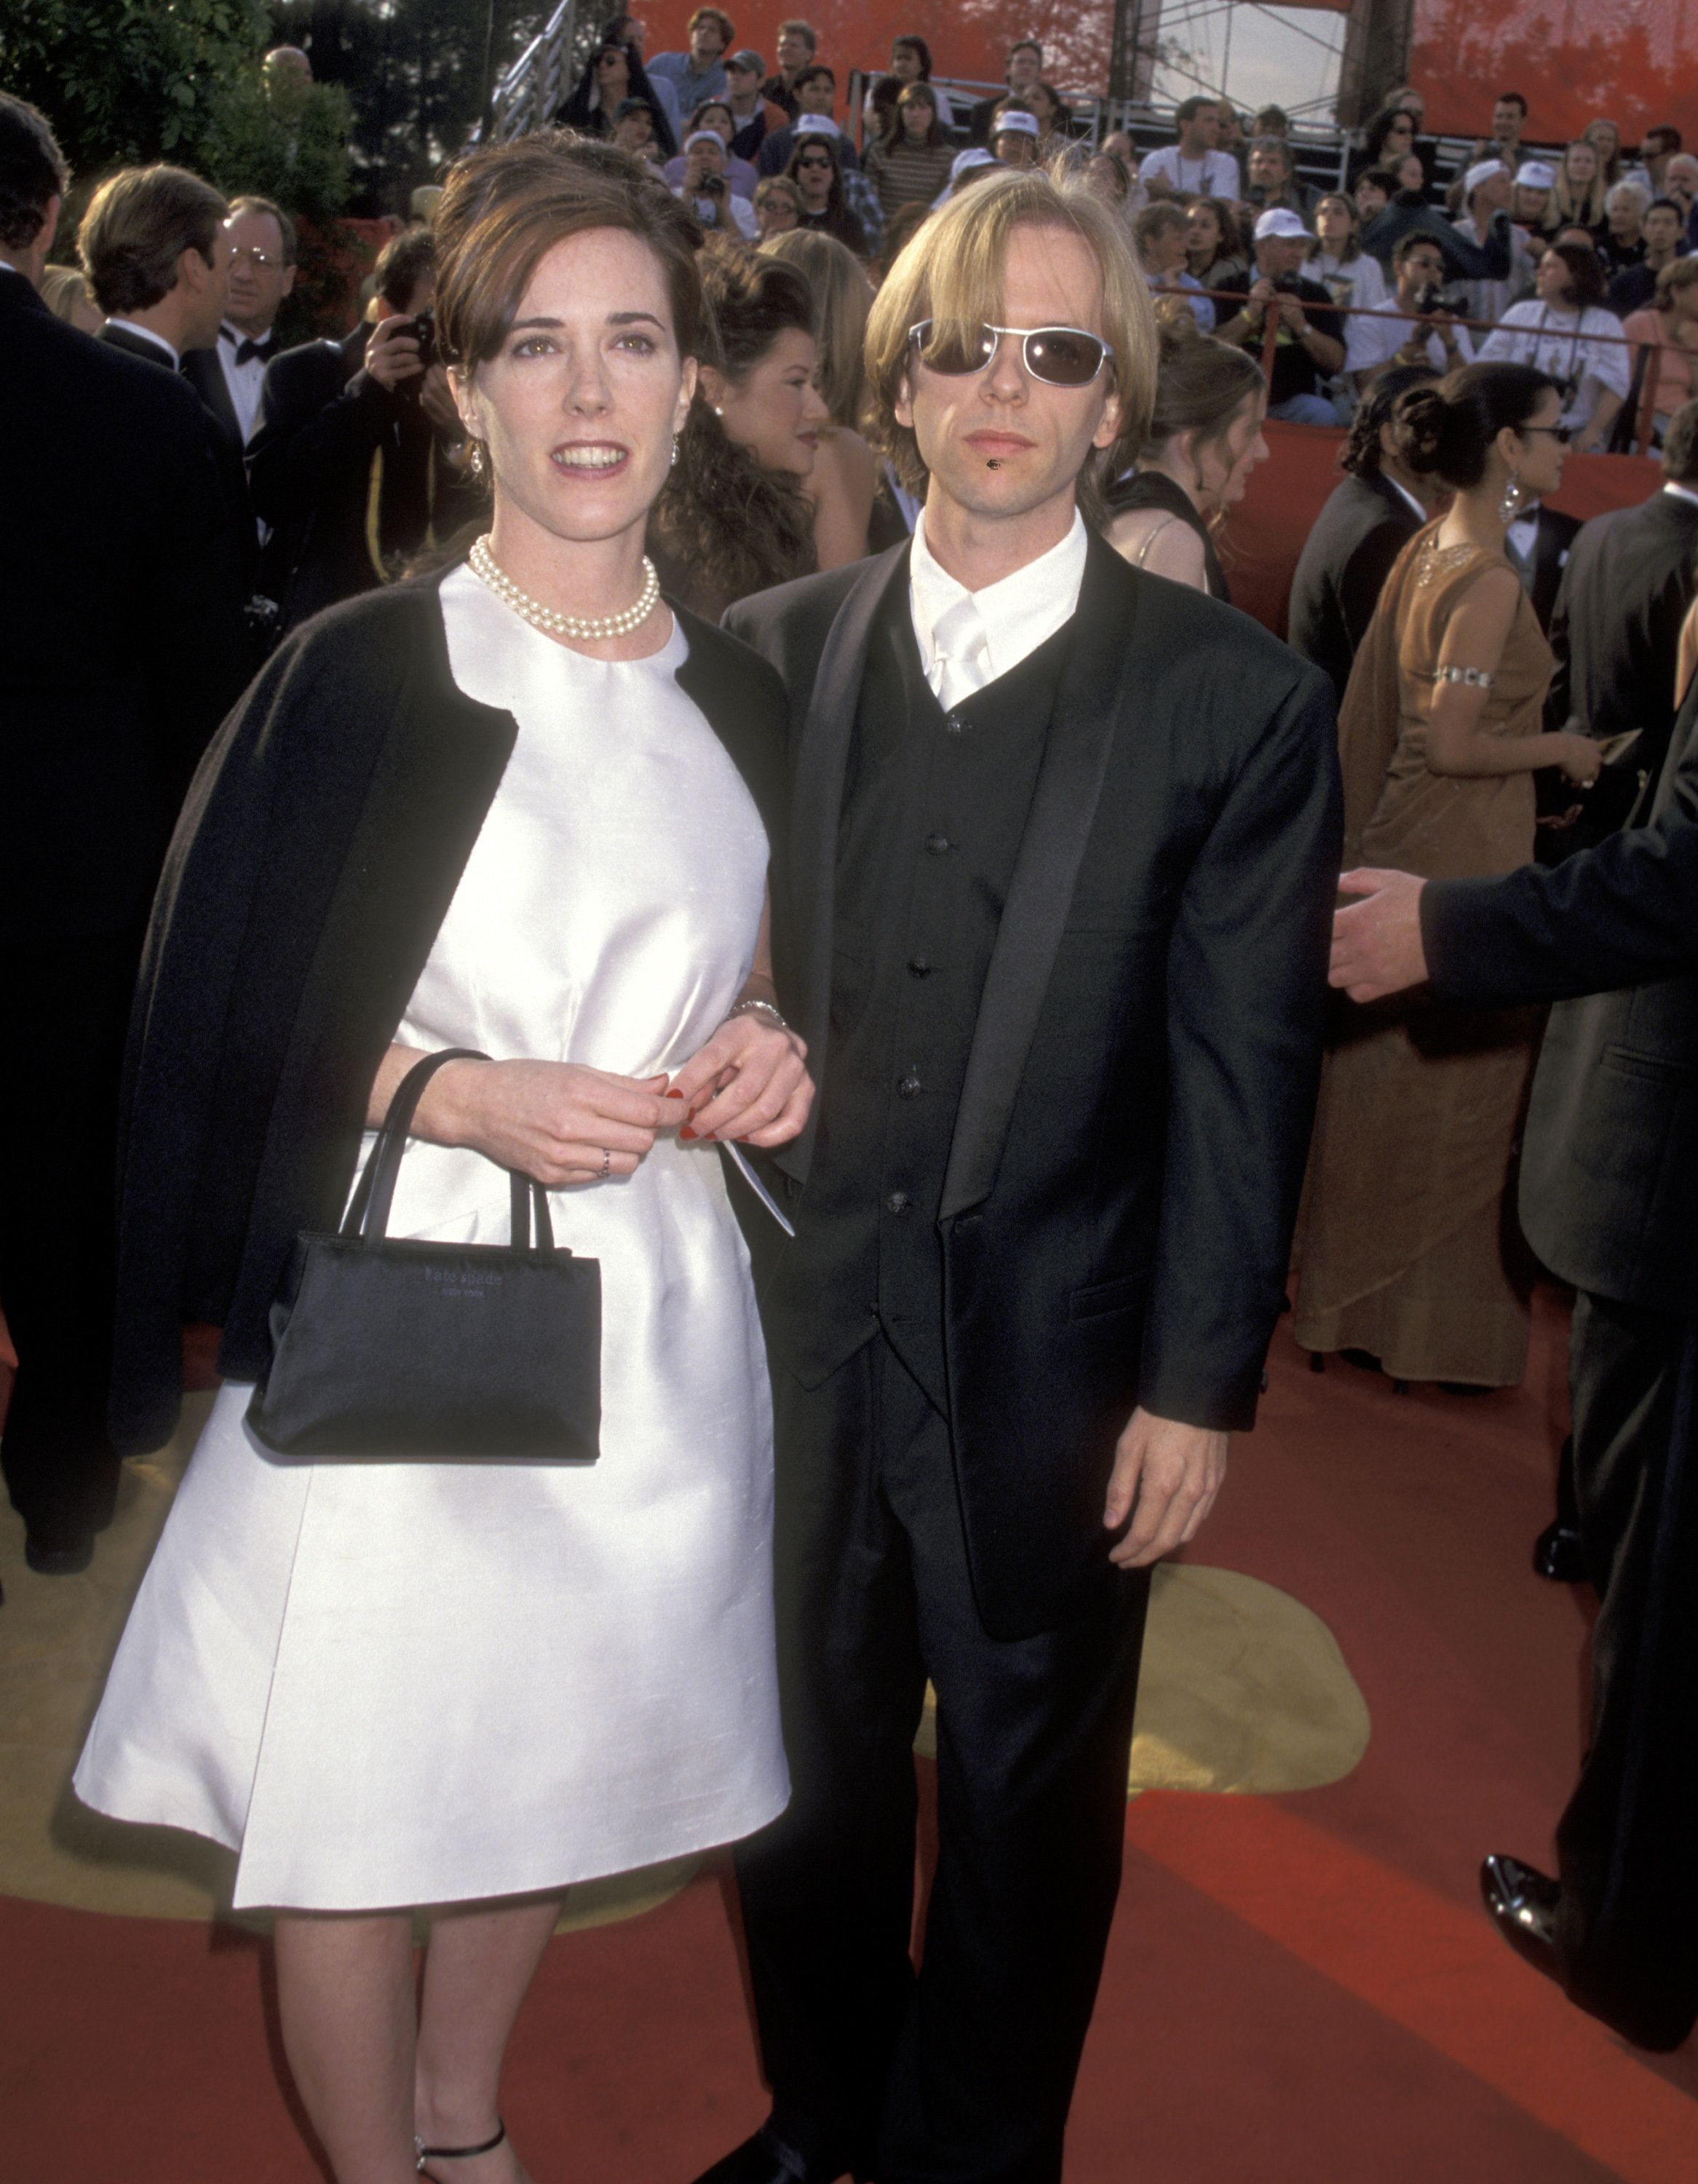 Spade, pictured here with David Spade, at the 69th annual Academy Awards.